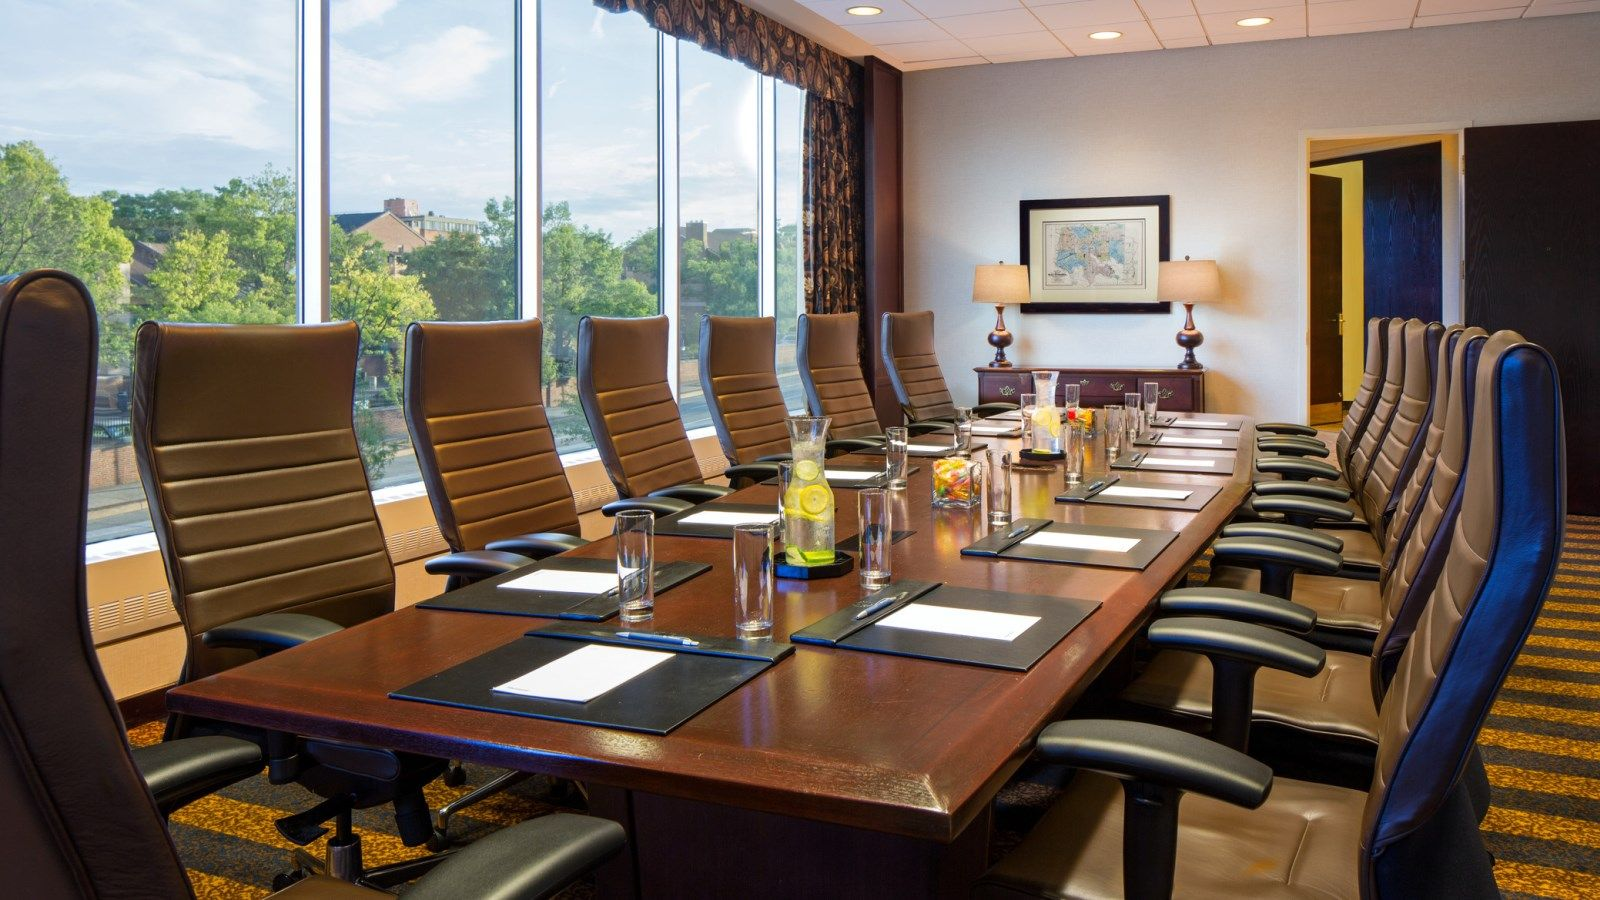 Baltimore Meeting - Boardroom